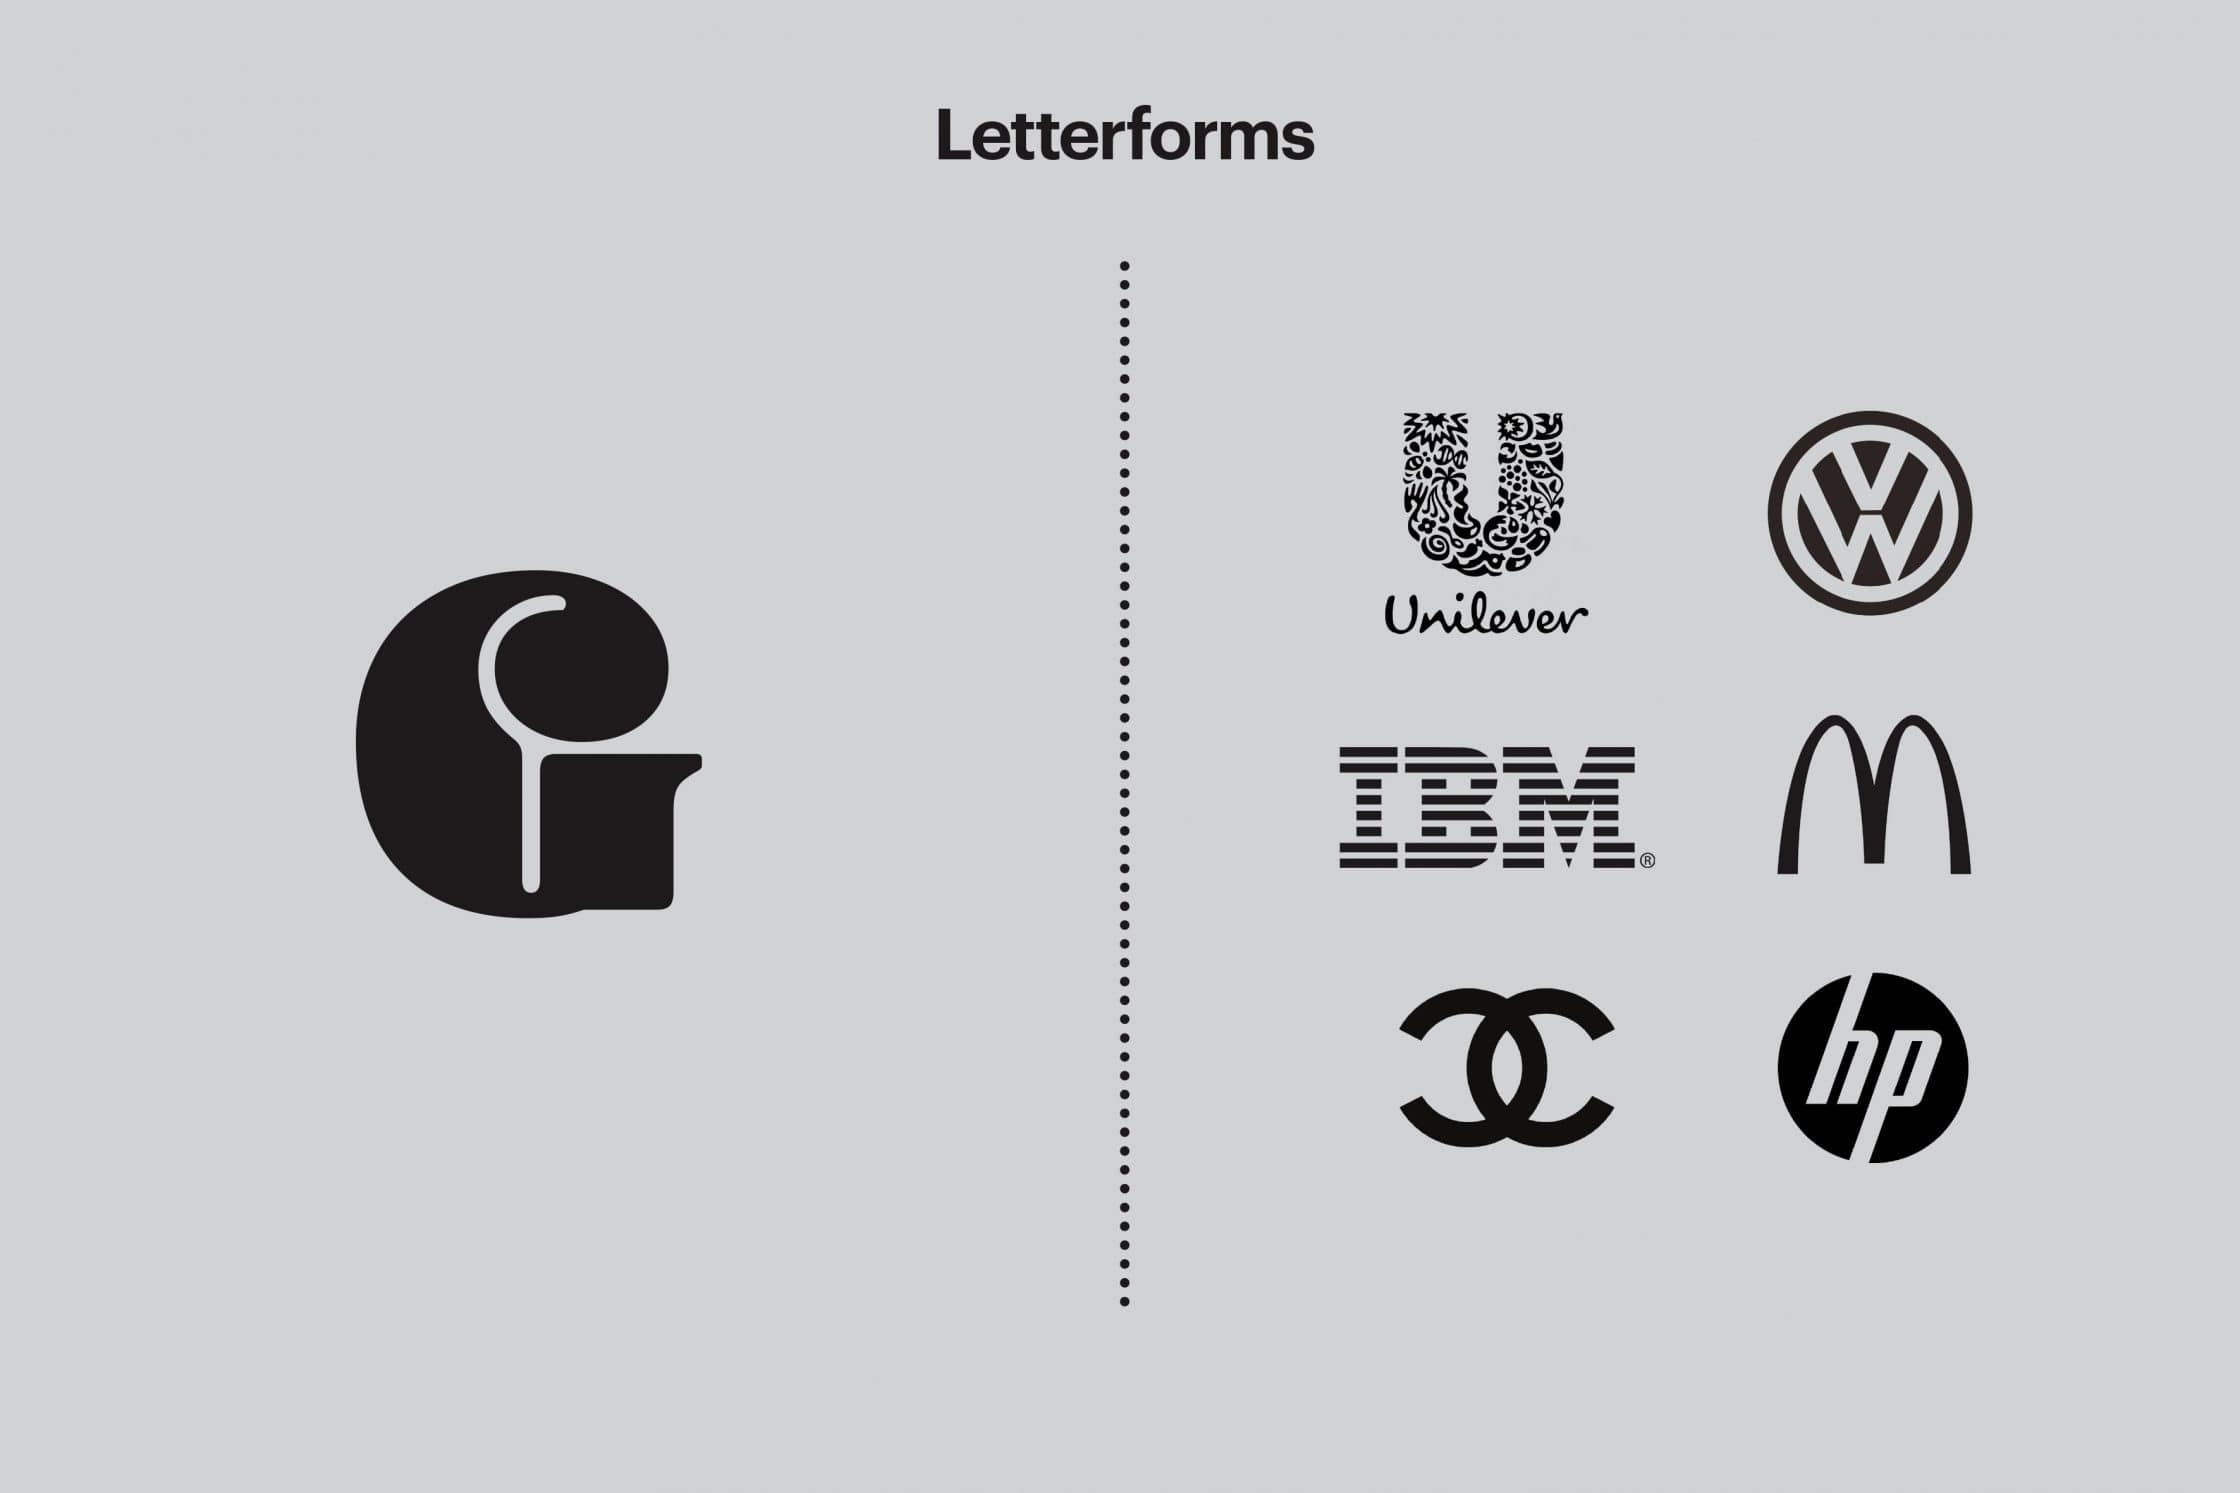 Example letterforms used by Generico and known brands.